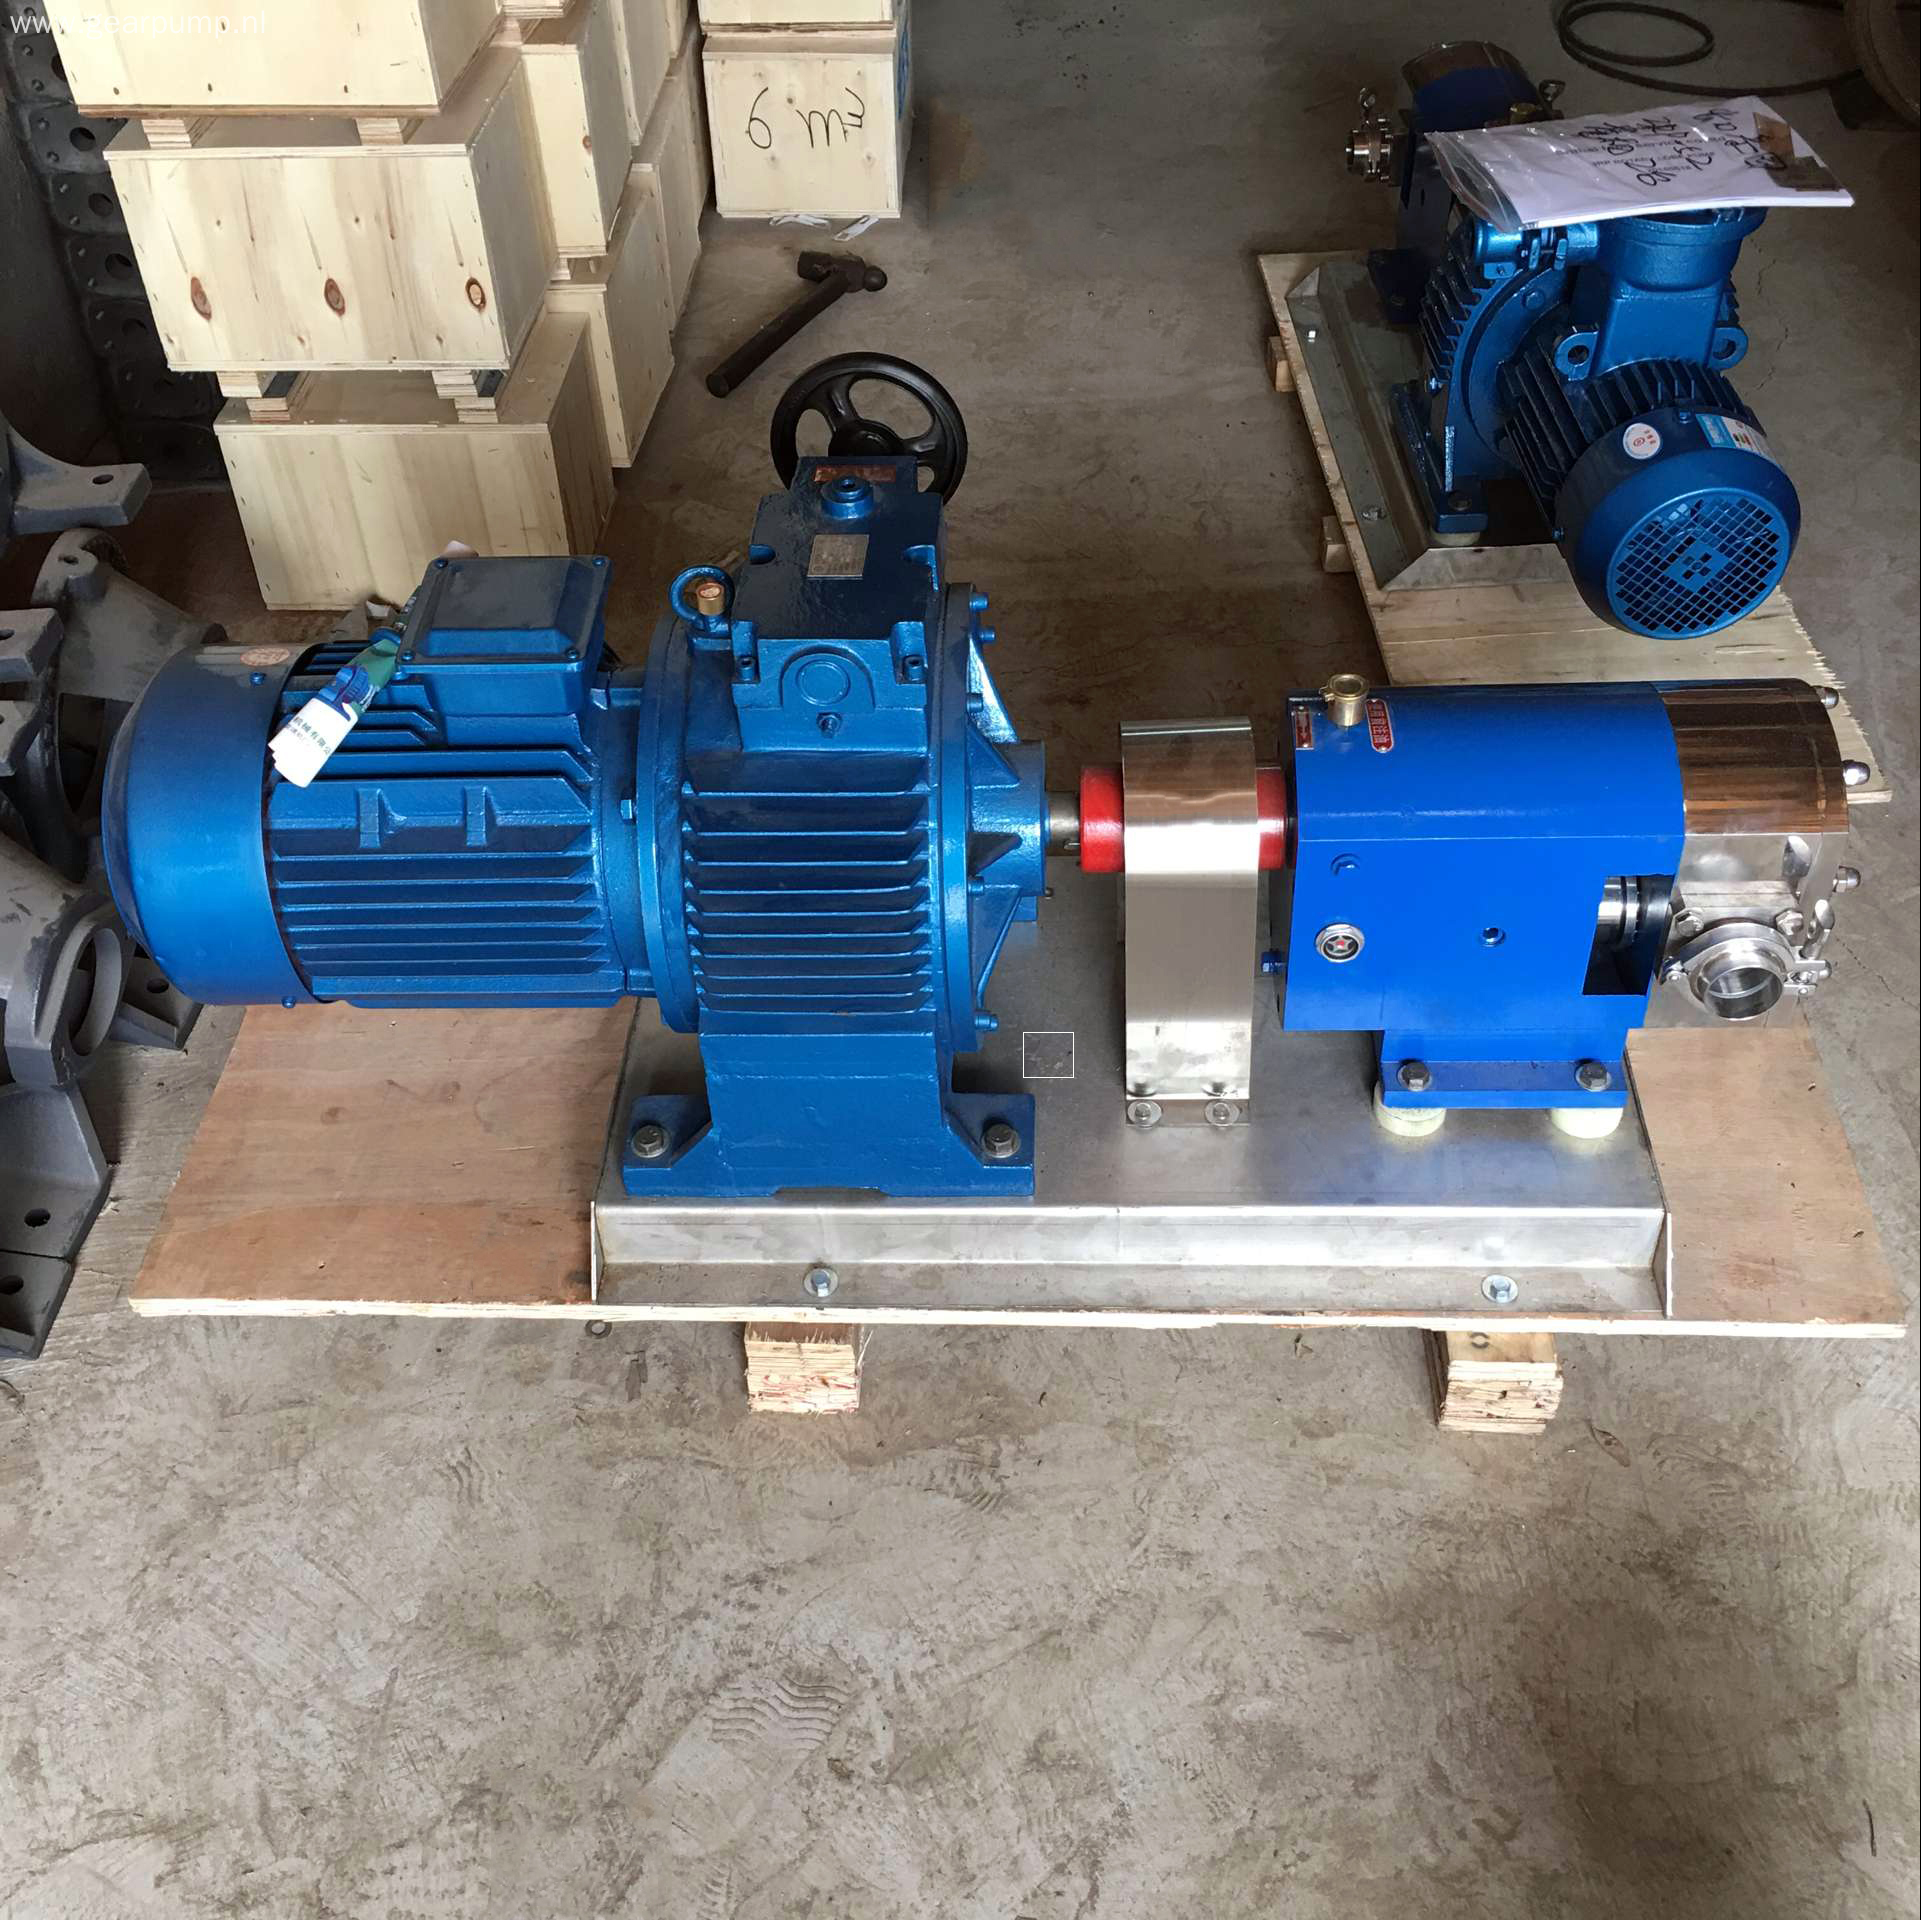 Stainless steel 304 viscous liquid transfer pumps